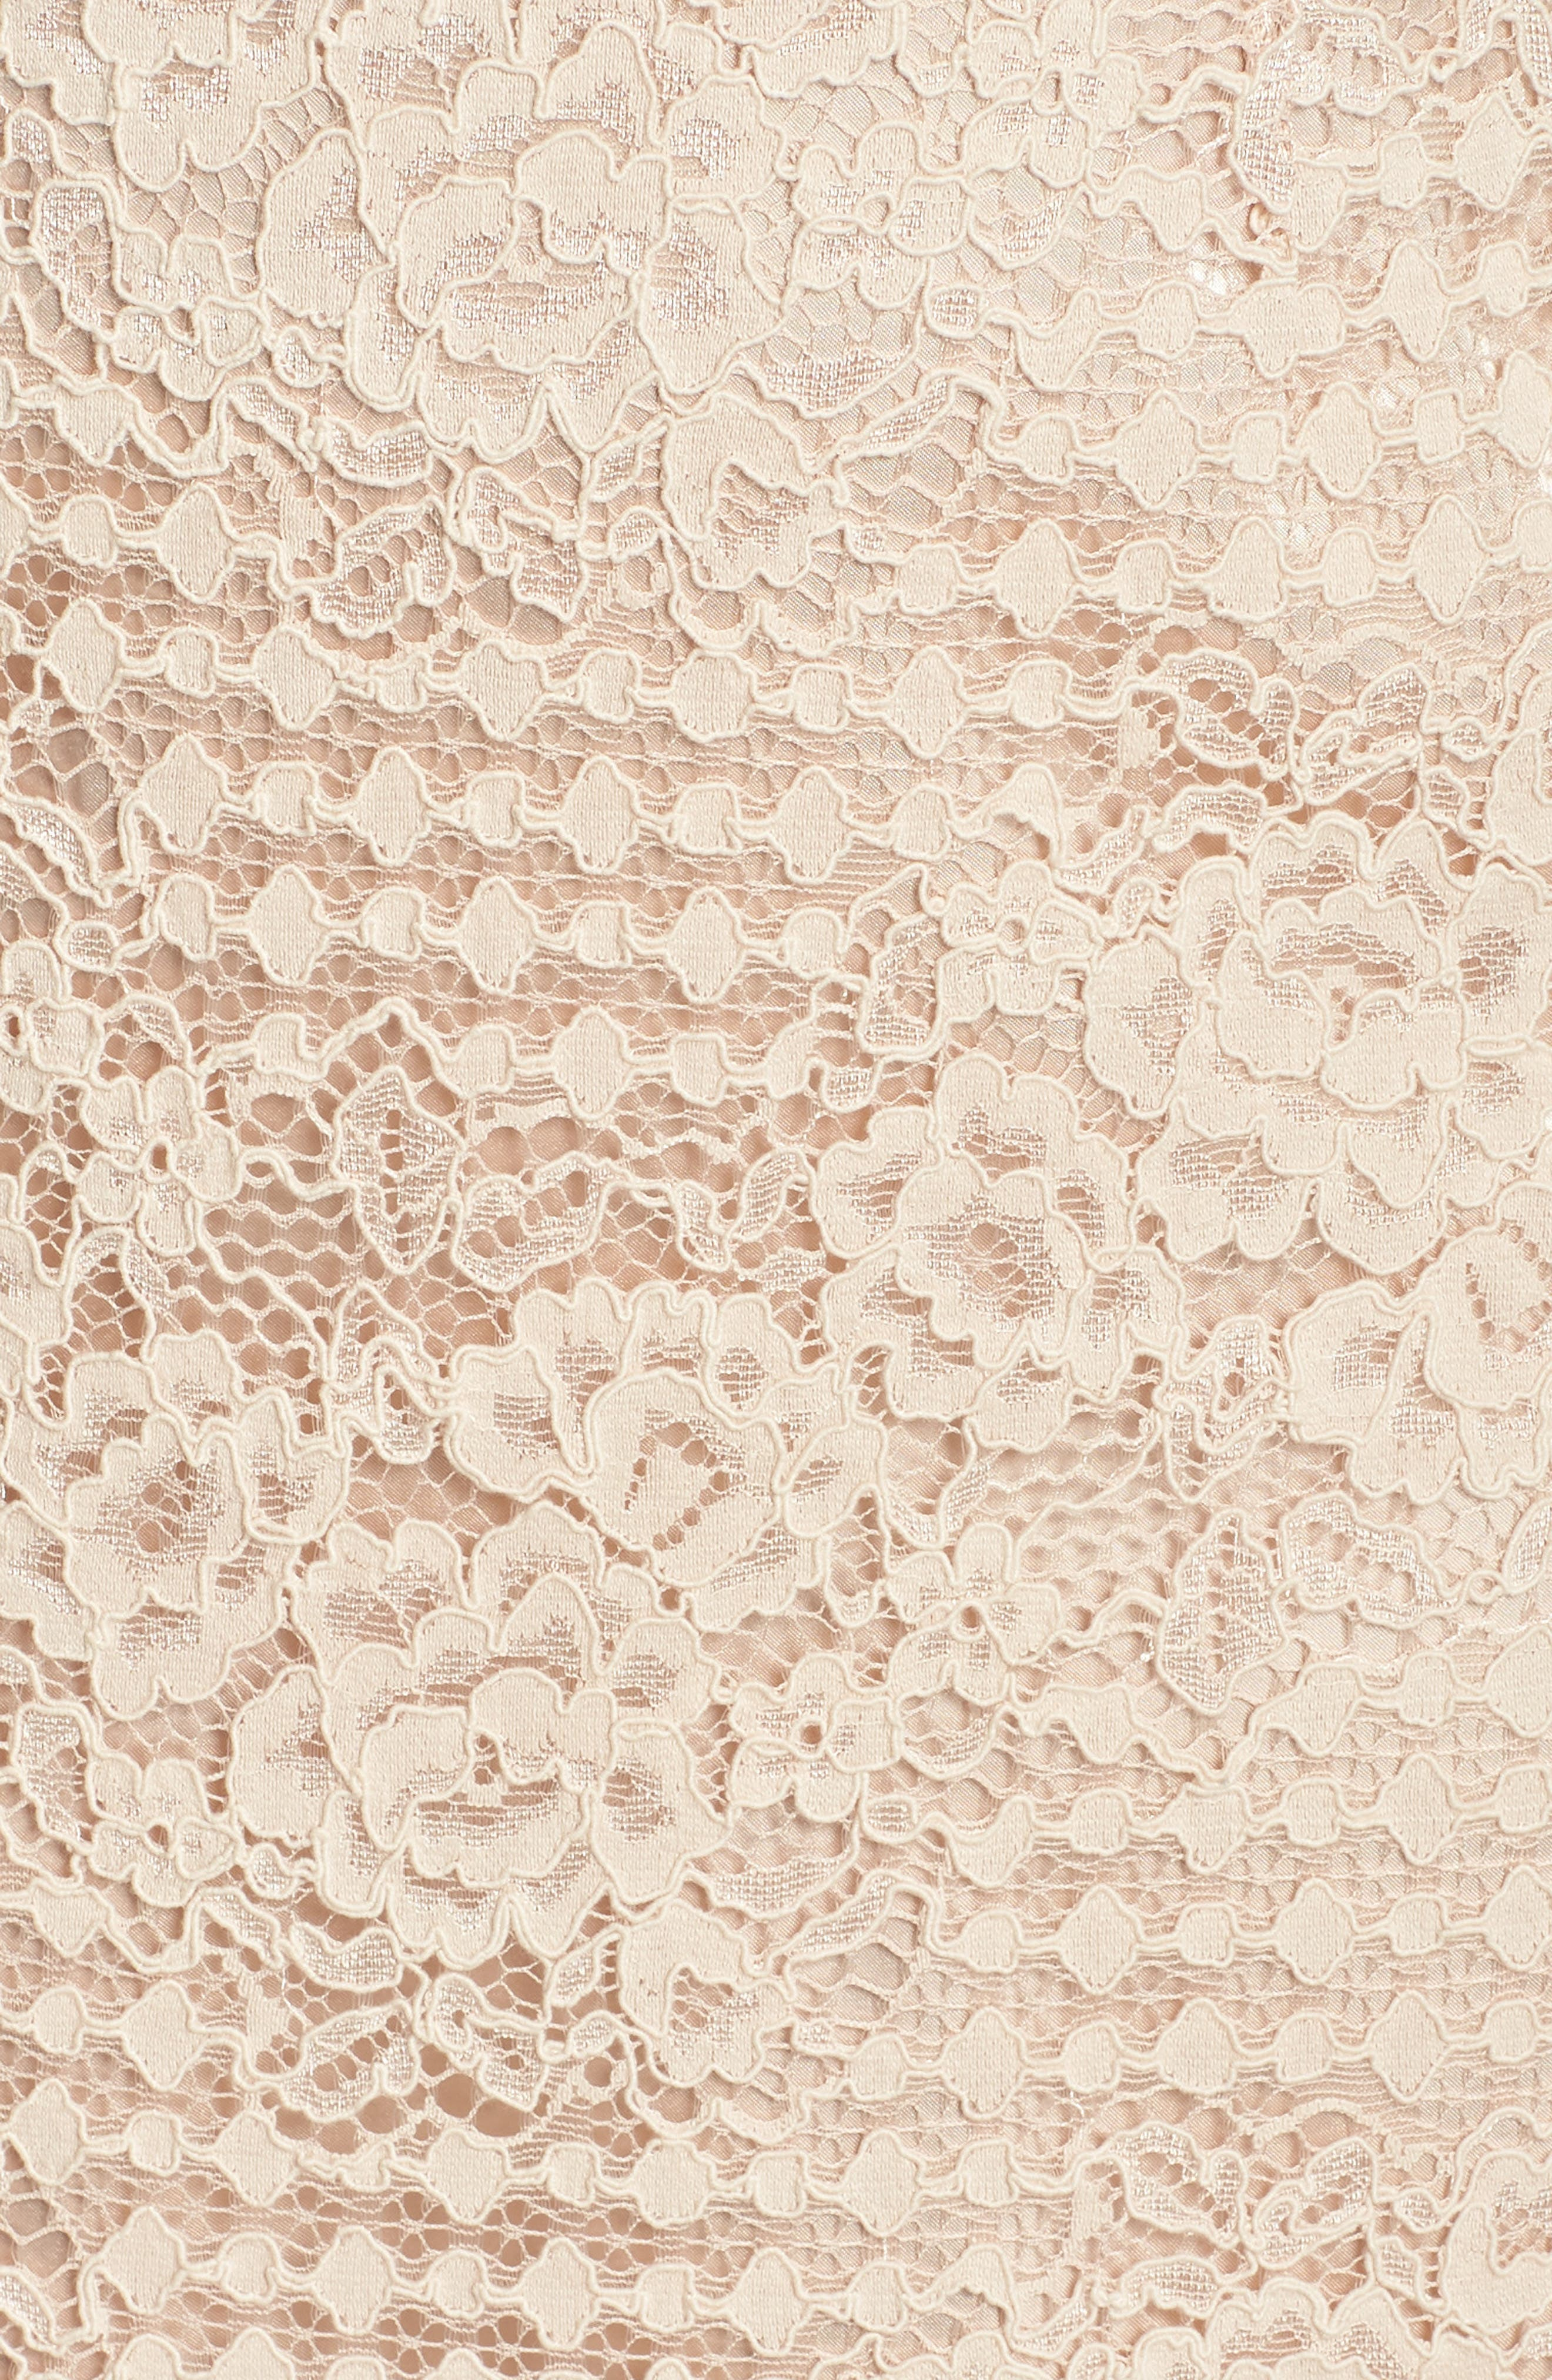 Ruched Sleeve Lace Dress,                             Alternate thumbnail 12, color,                             PINK BLUSH